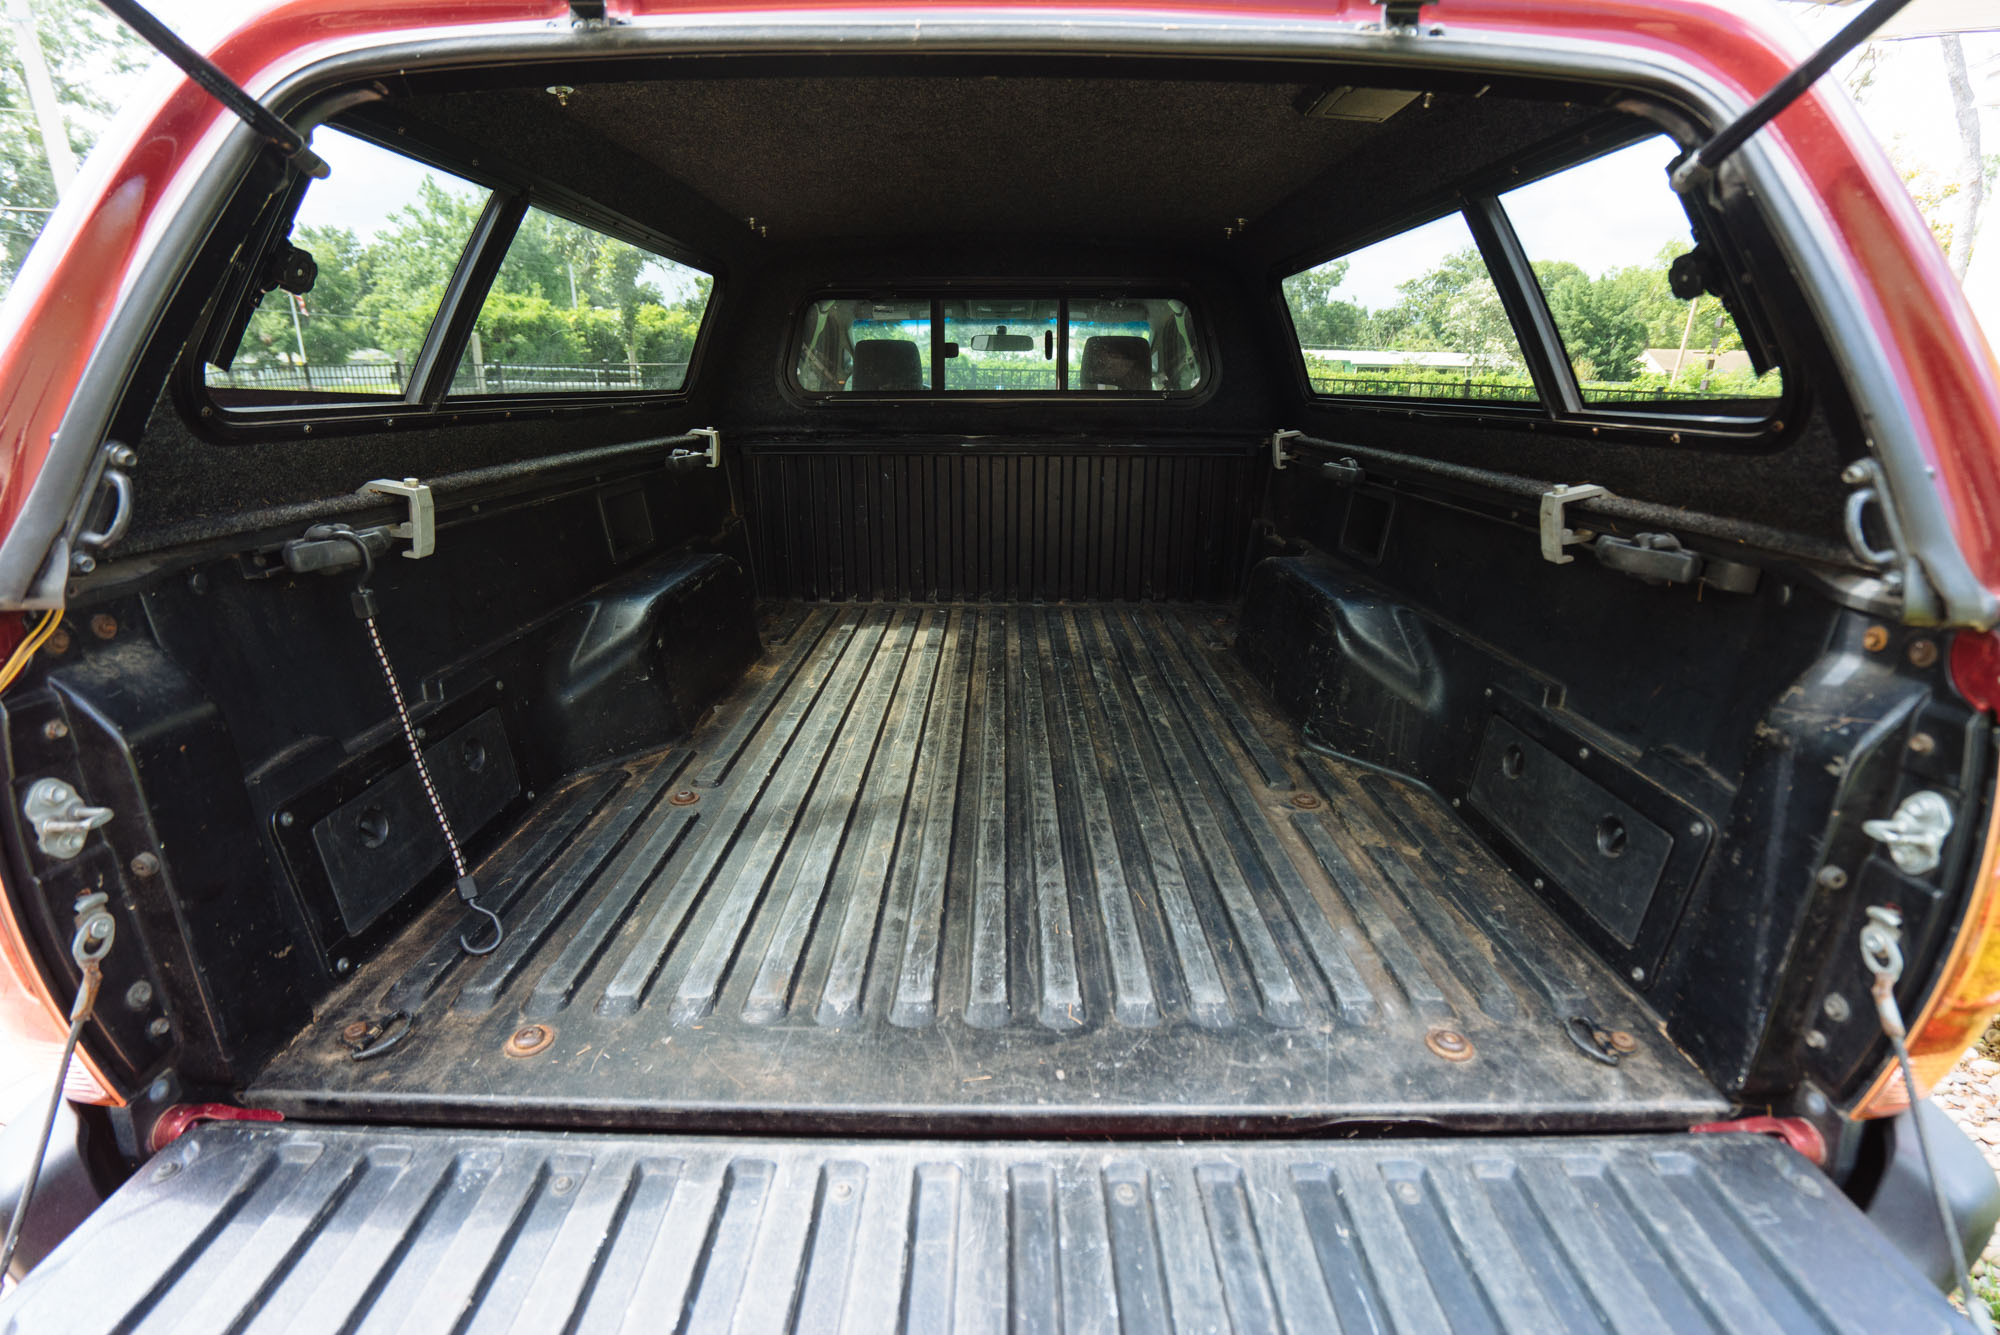 Bed Of A Truck >> How To Build A Truck Bed Camper For Under 400 Bound For Nowhere